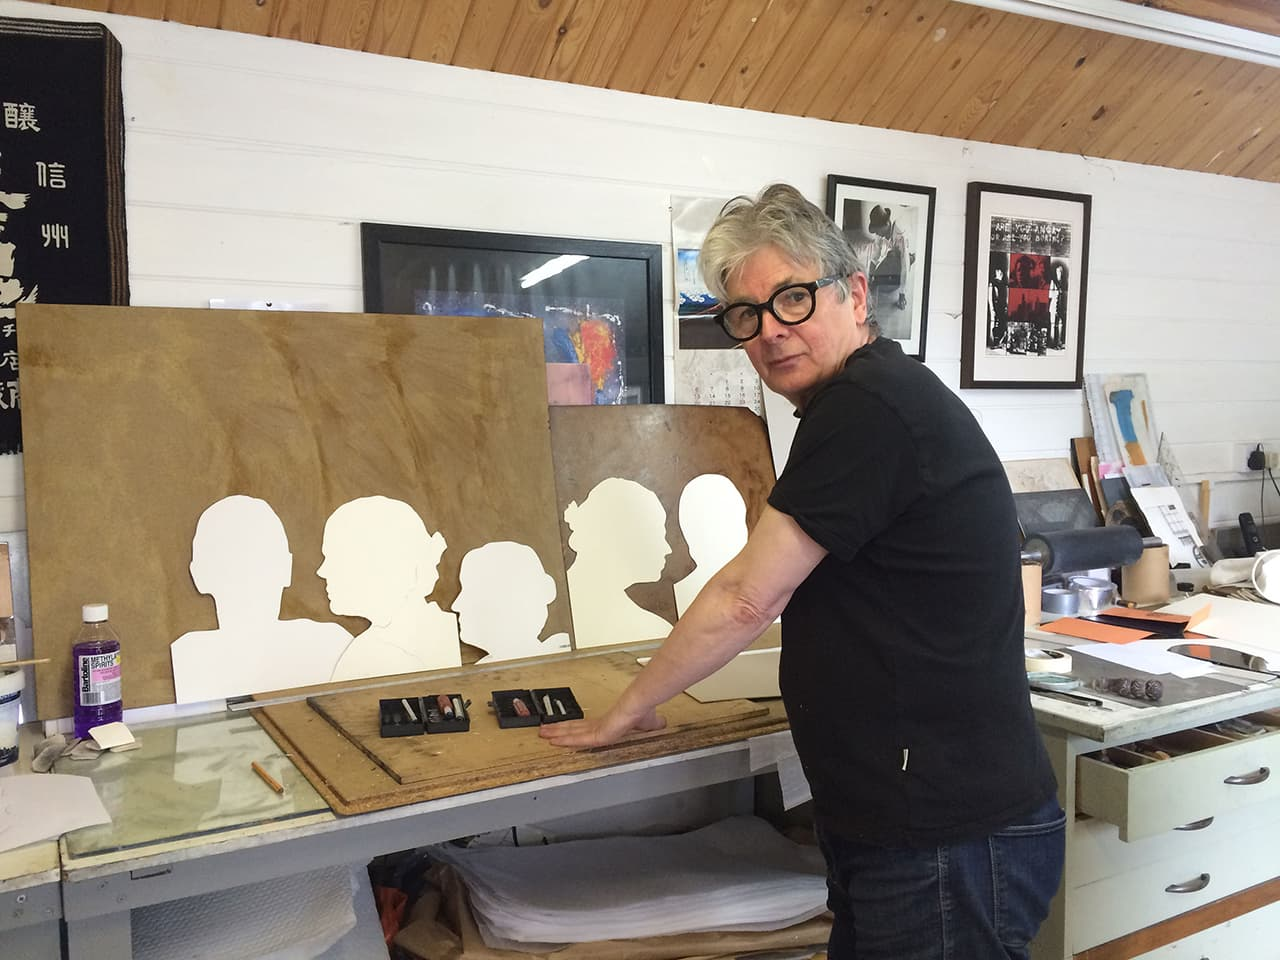 Nigel Oxley working on The Dark Self prints in his studio in Bexhill, 2016.